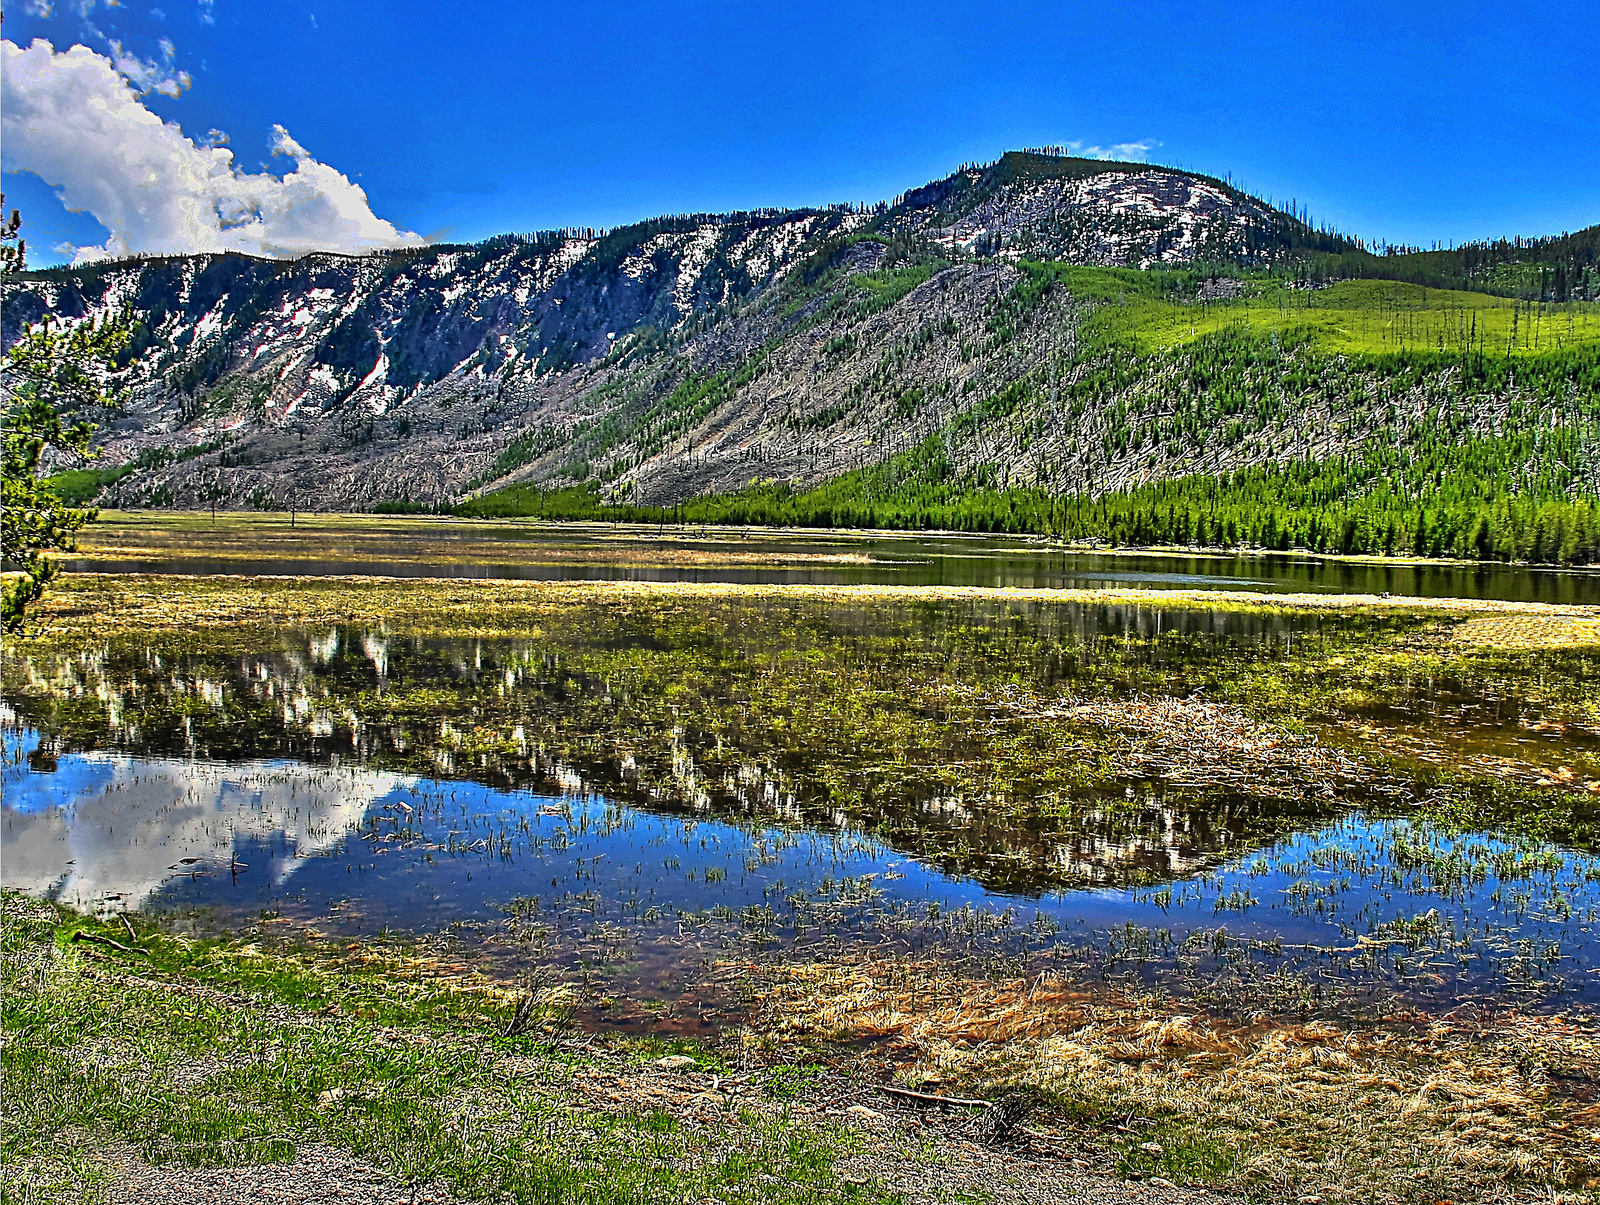 Fly Fishing In Yellowstone National Park: Just For Fun 1553